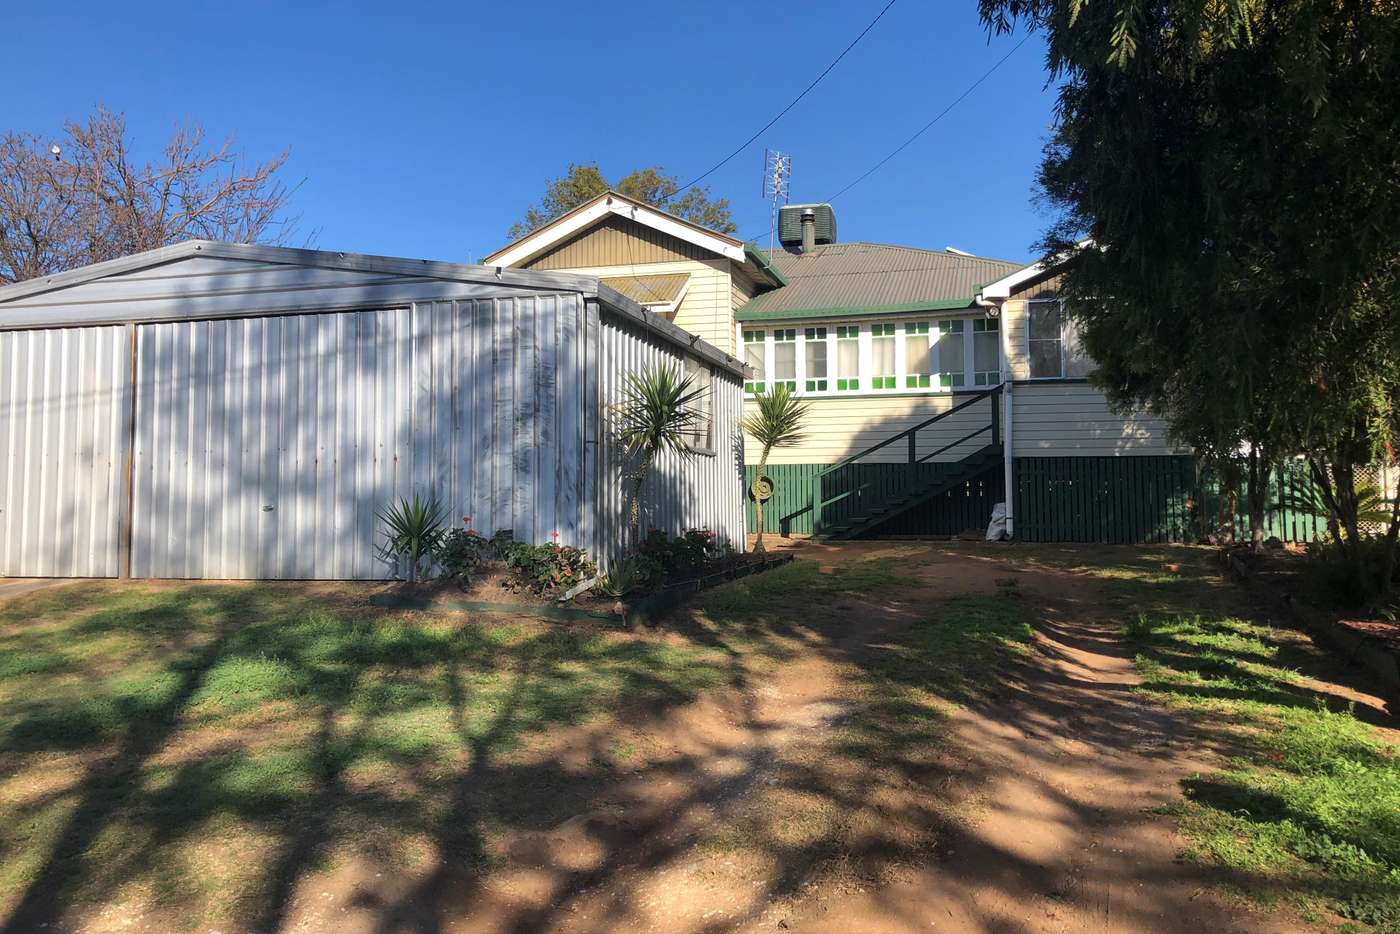 Main view of Homely house listing, 11 Ivory Ave, Warwick QLD 4370